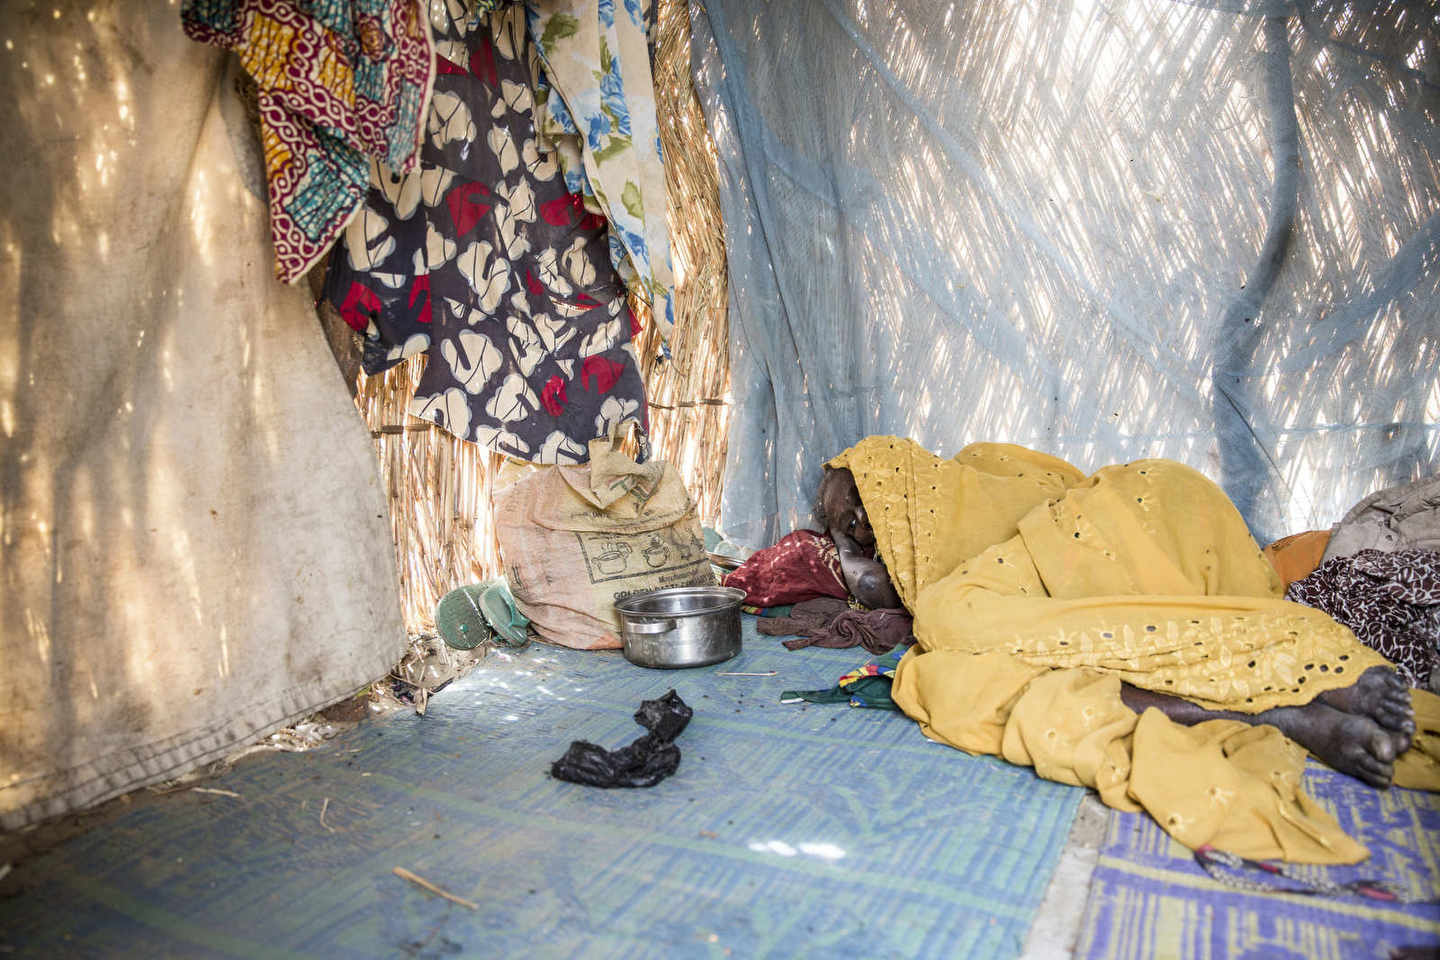 Inside of a thatch hut, a woman rests and tries to eat small bits of rice in a makeshift refugee camp in Monguno, an area of Borno state that was previously held by Boko Haram but has been newly liberated by the Nigerian Army.